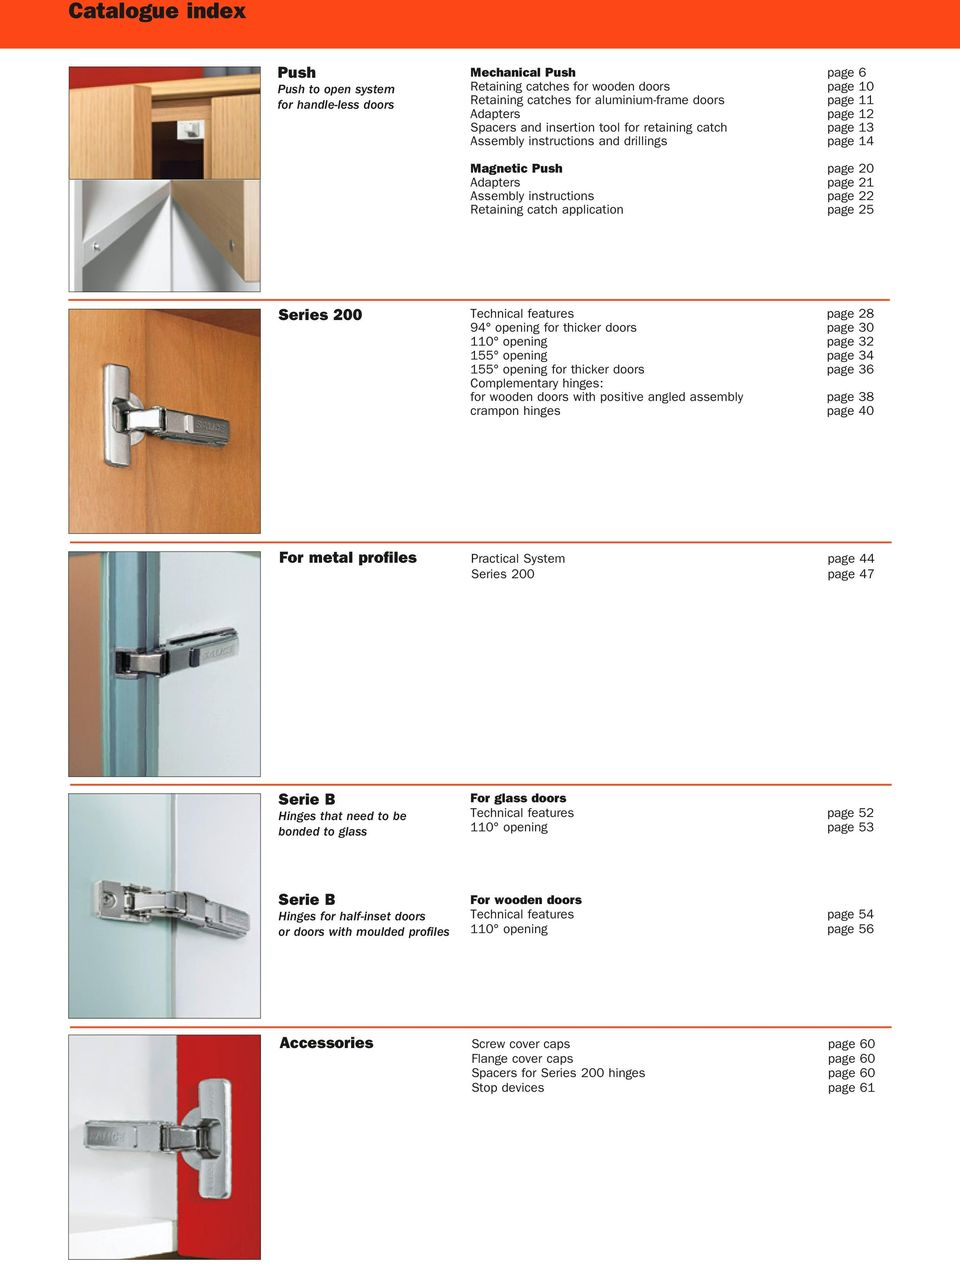 page 25 Series 200 Technical features page 28 94 opening for thicker doors page 30 110 opening page 32 155 opening page 34 155 opening for thicker doors page 36 Complementary hinges: for wooden doors